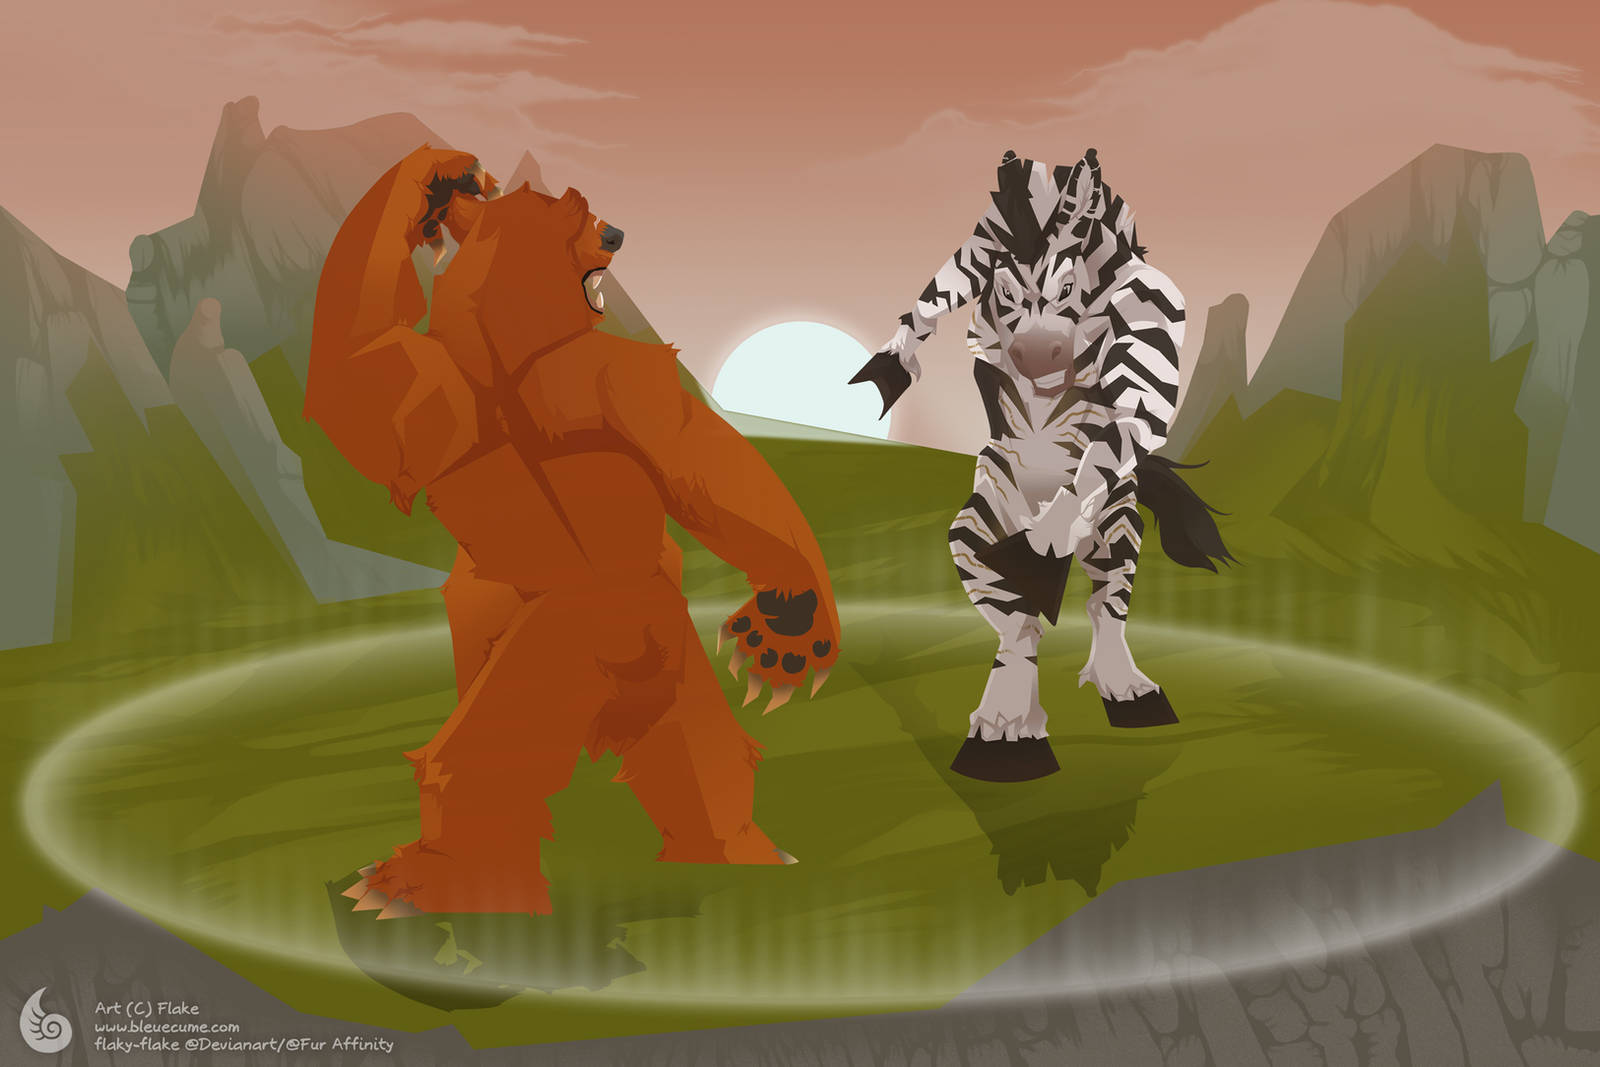 Creature Big Fight by flaky-flake